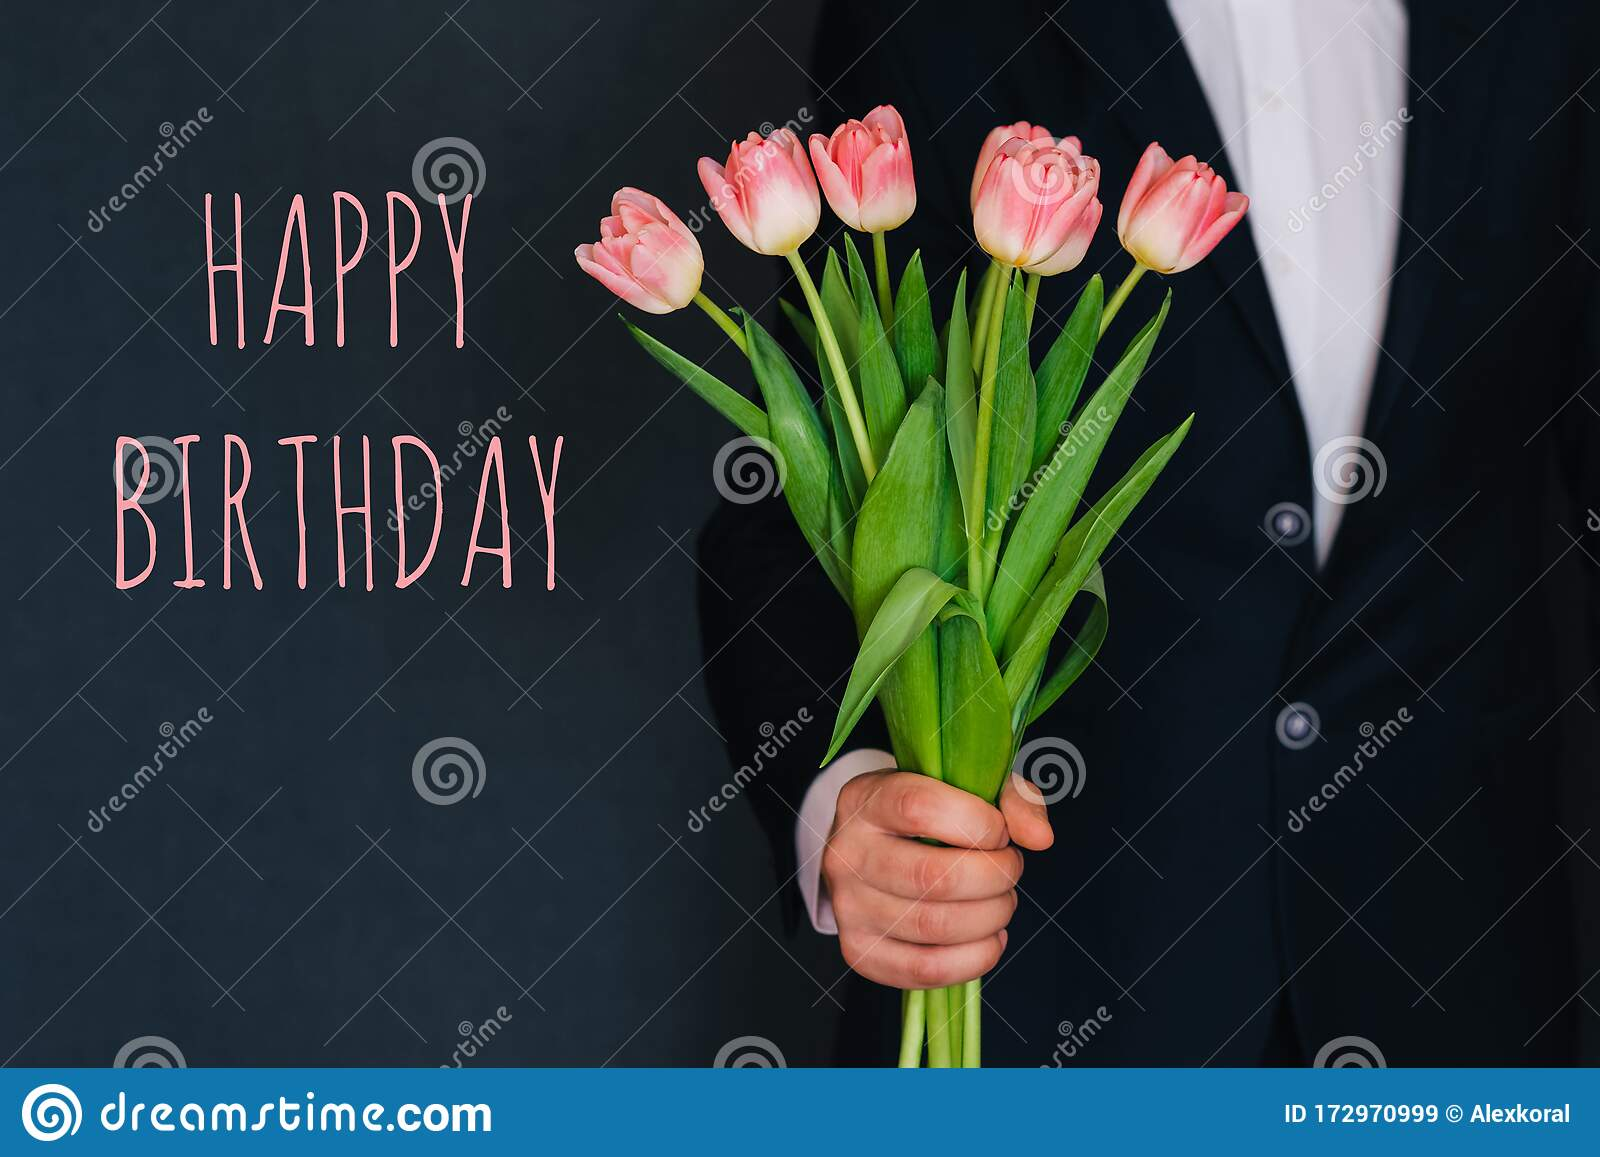 Man Giving A Bouquet Of Pink Flowers Tulips Greeting Card With Text Happy Birthday Stock Image Image Of Pink Fresh 172970999